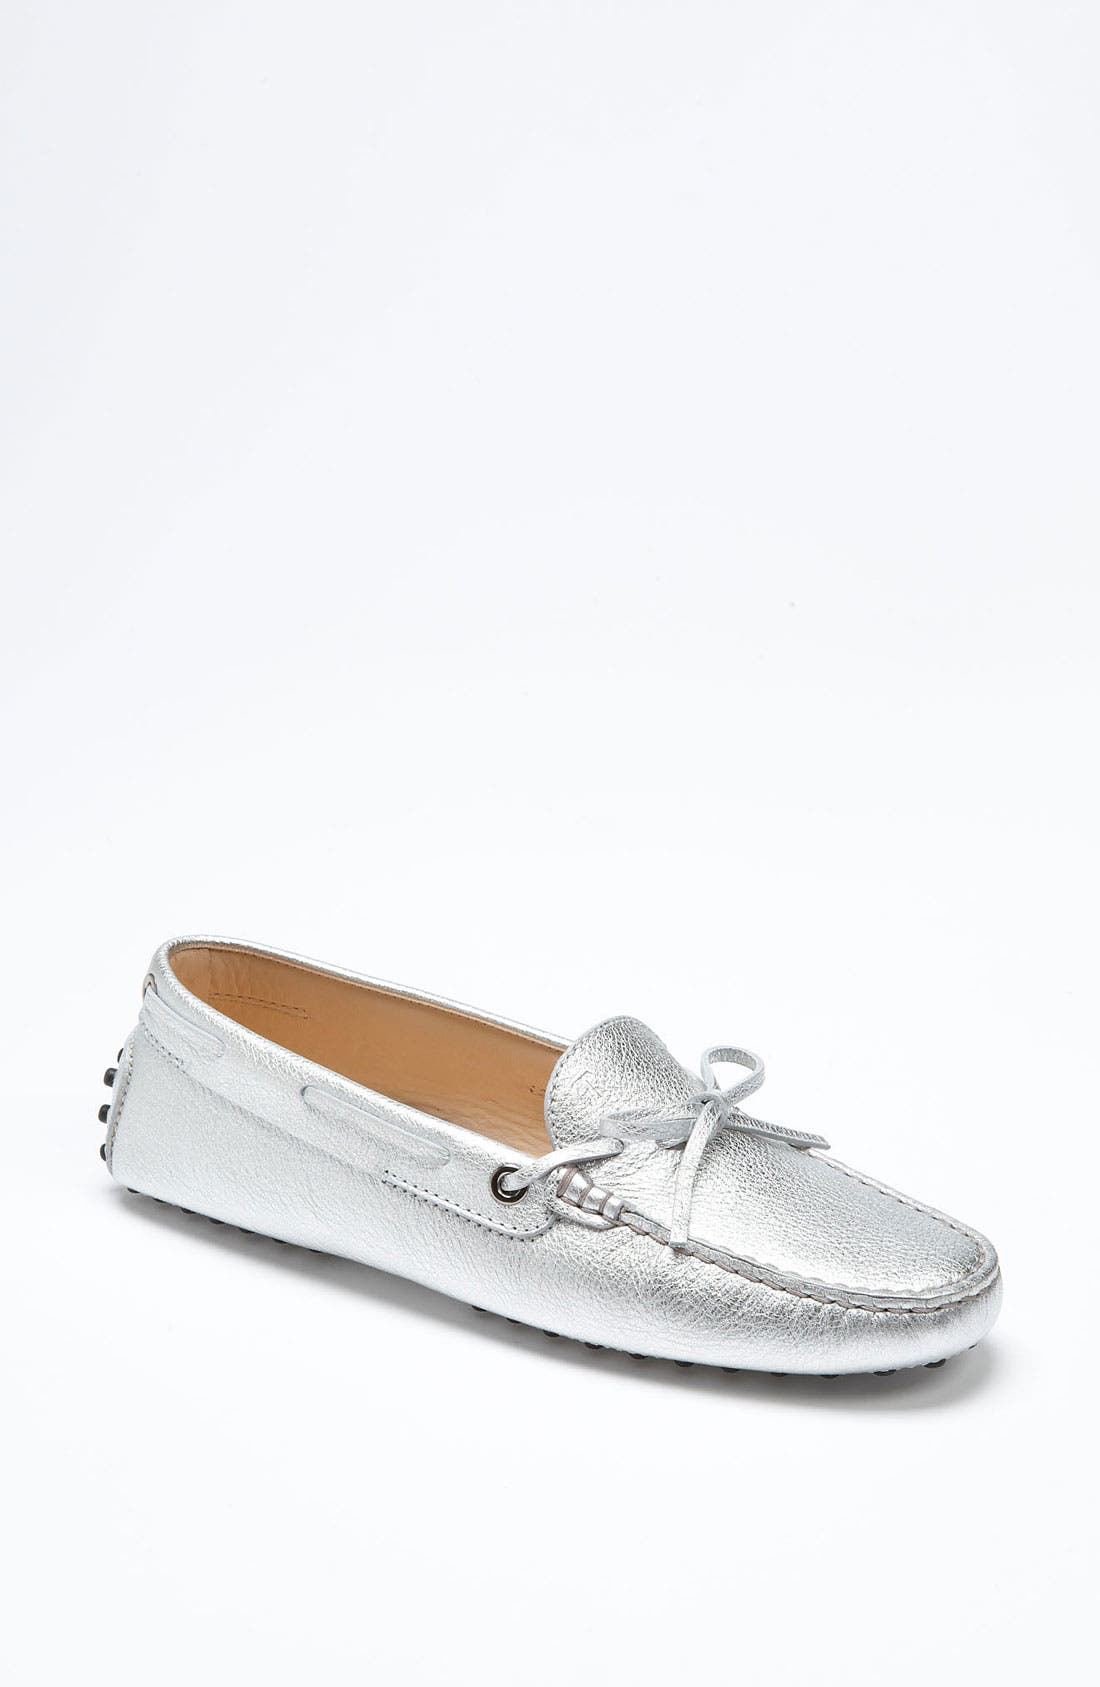 Main Image - Tod's 'Heaven New Laccetto' Driving Moccasin